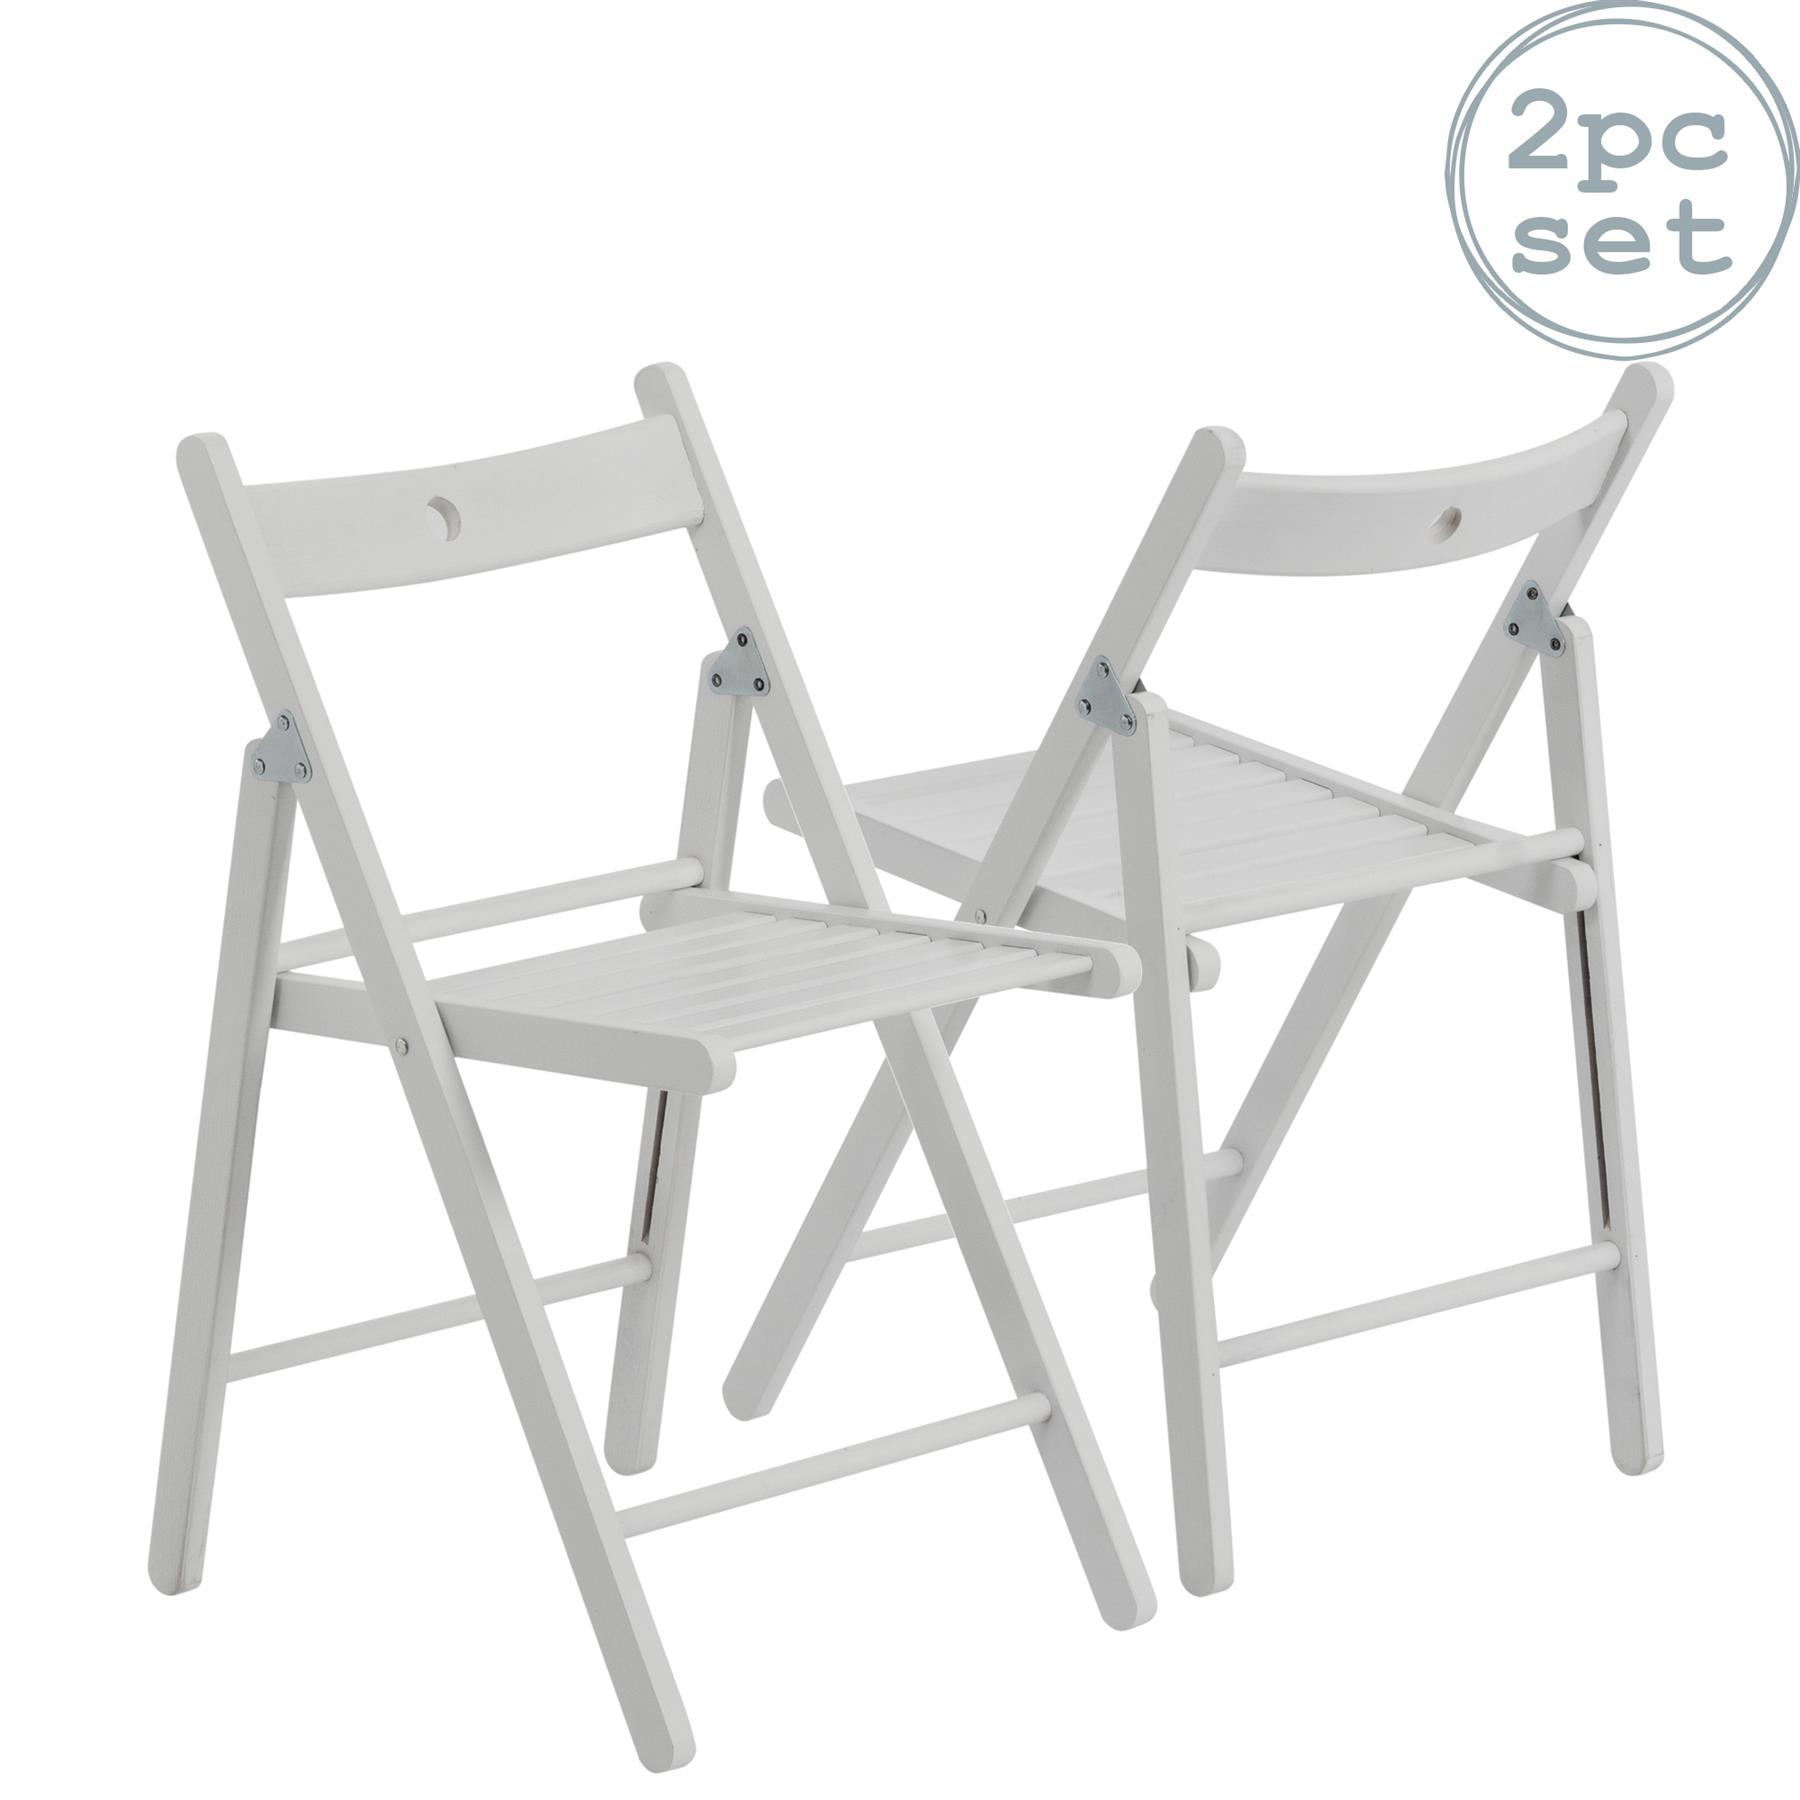 Harbour Housewares Wooden Folding Chairs White Wood Colour Pack of 2